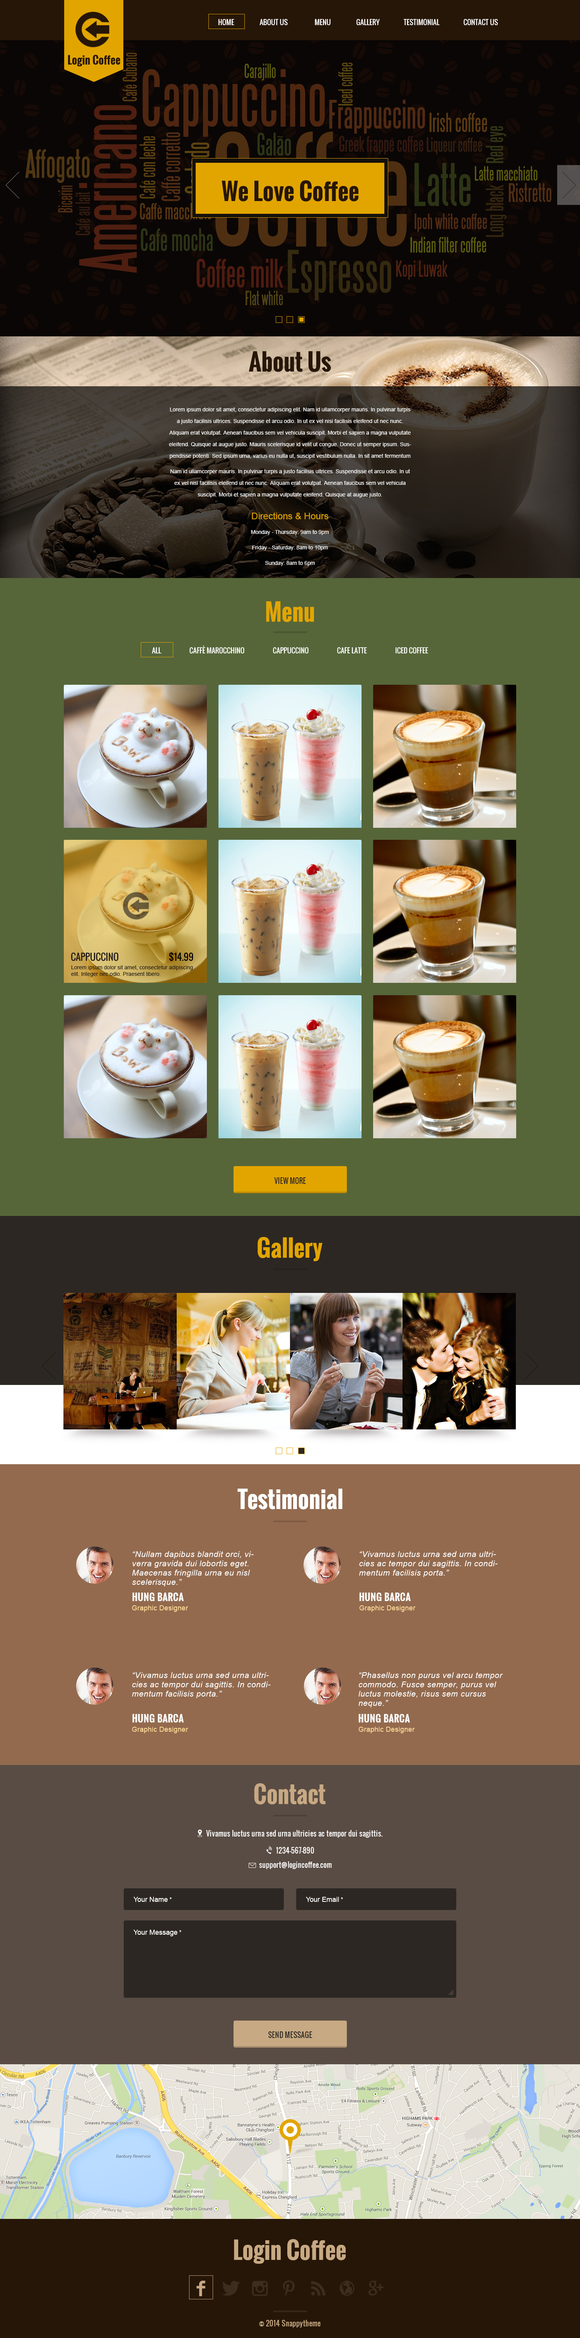 Login Coffee One Page Template